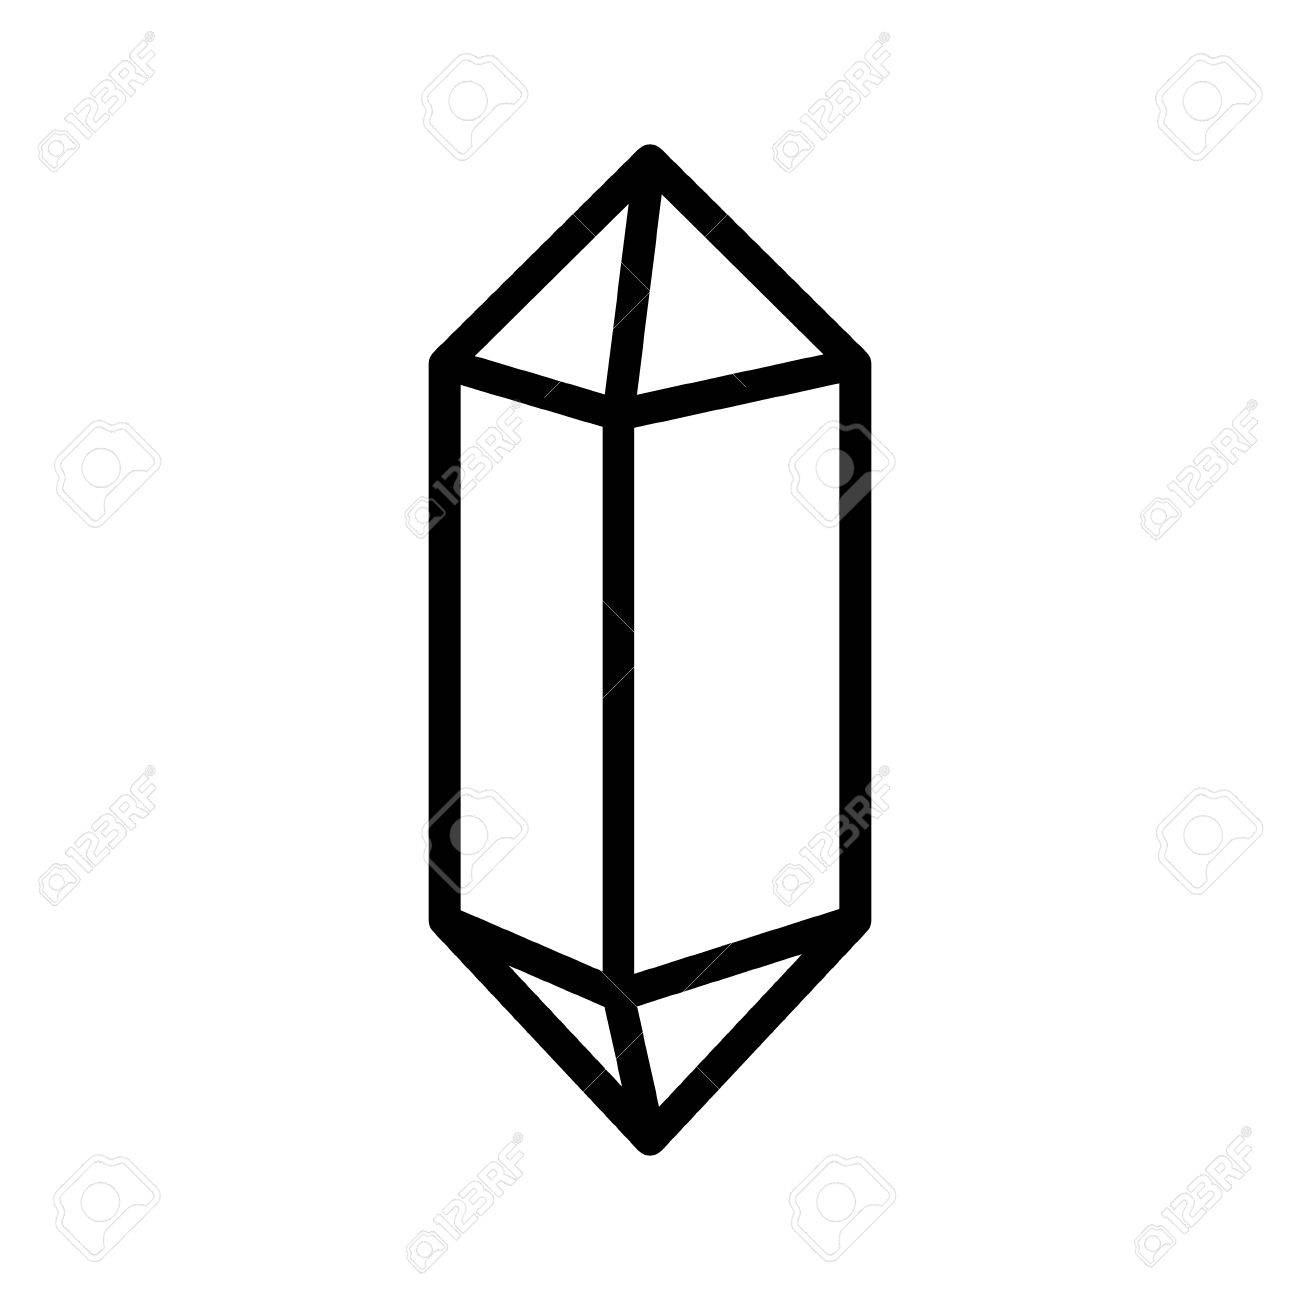 Quartz crystal or crystalline solid line art vector icon for